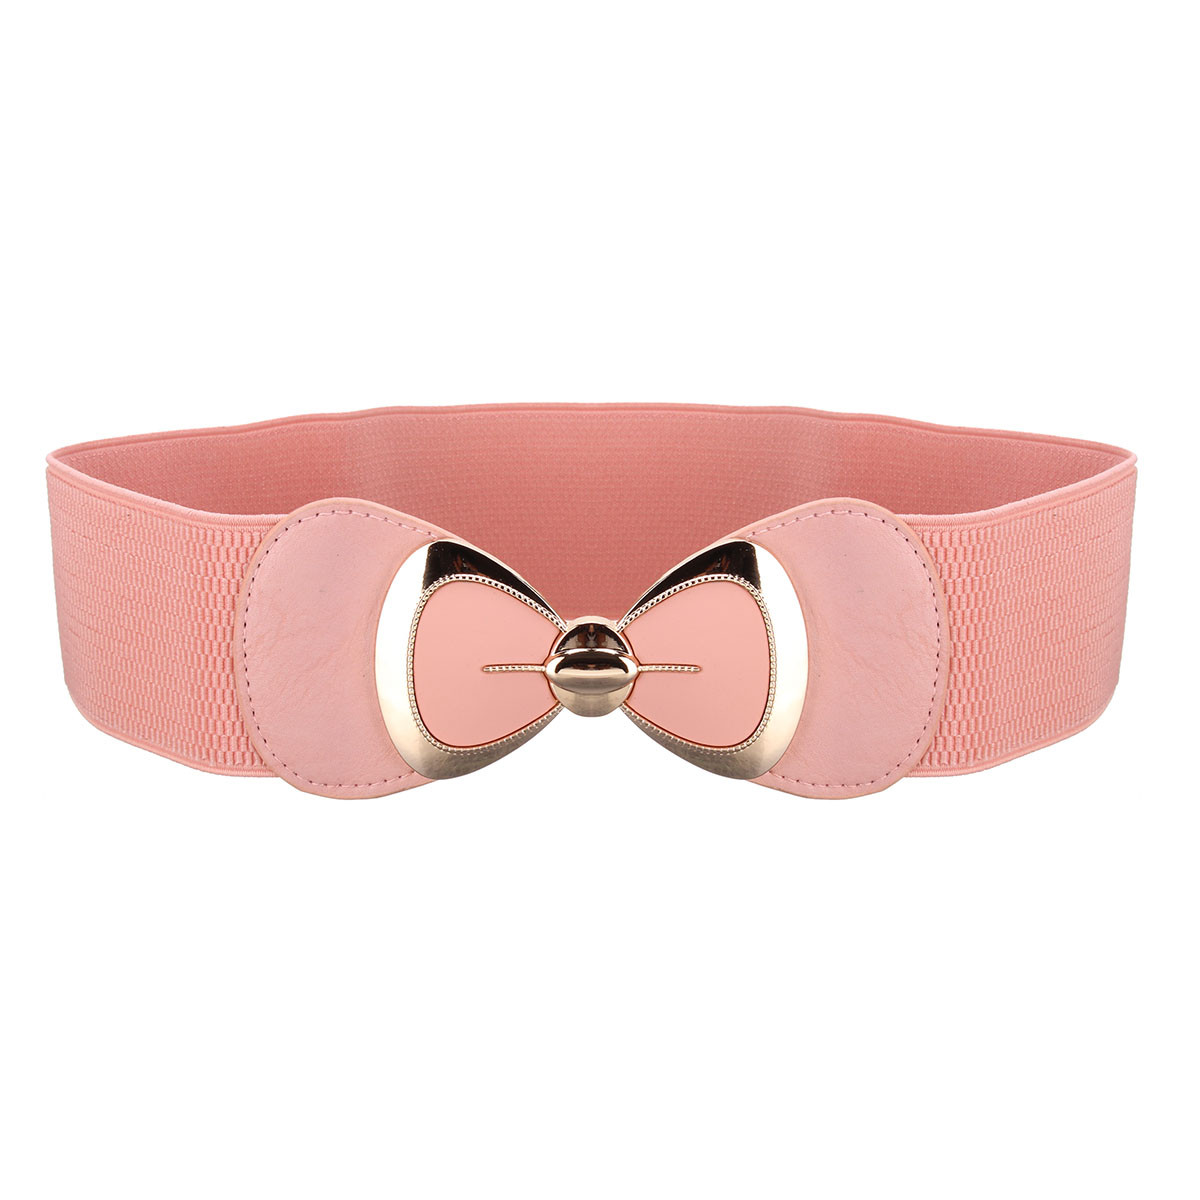 Women Ladies Bowknot Buckle Leather Waistband Wide Elastic Stretchable Waist Belt